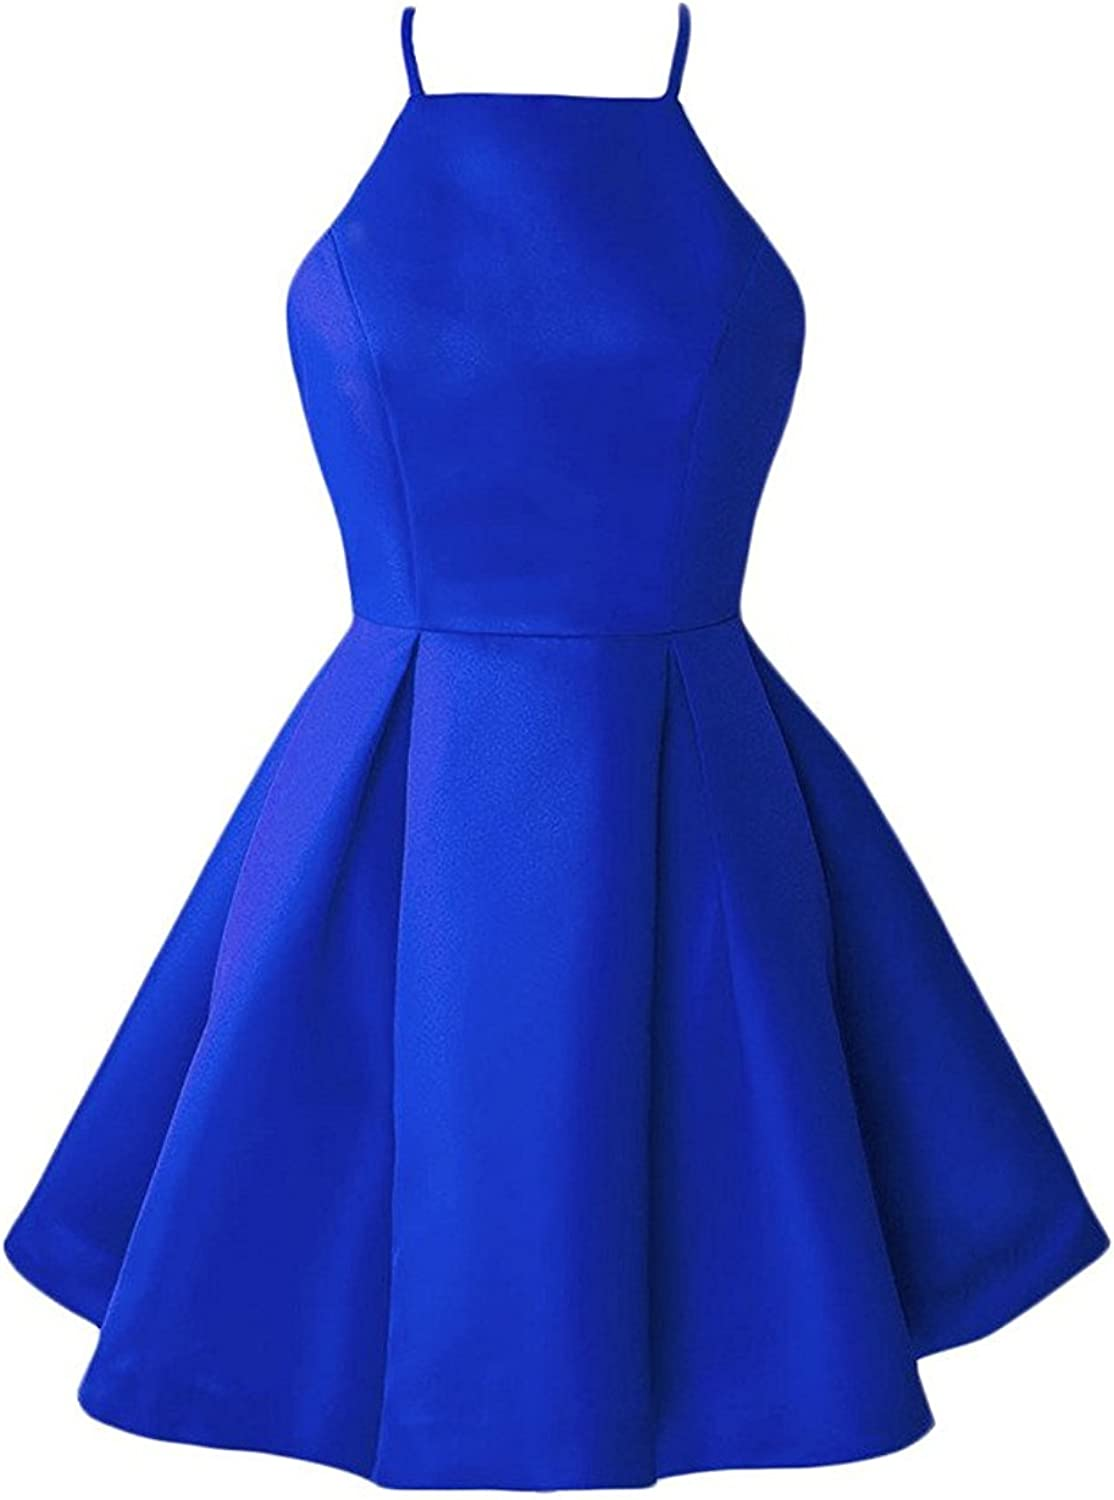 20KyleBird Women's Halter Satin Homecoming Dresses Short Cocktail Party Gowns KB006